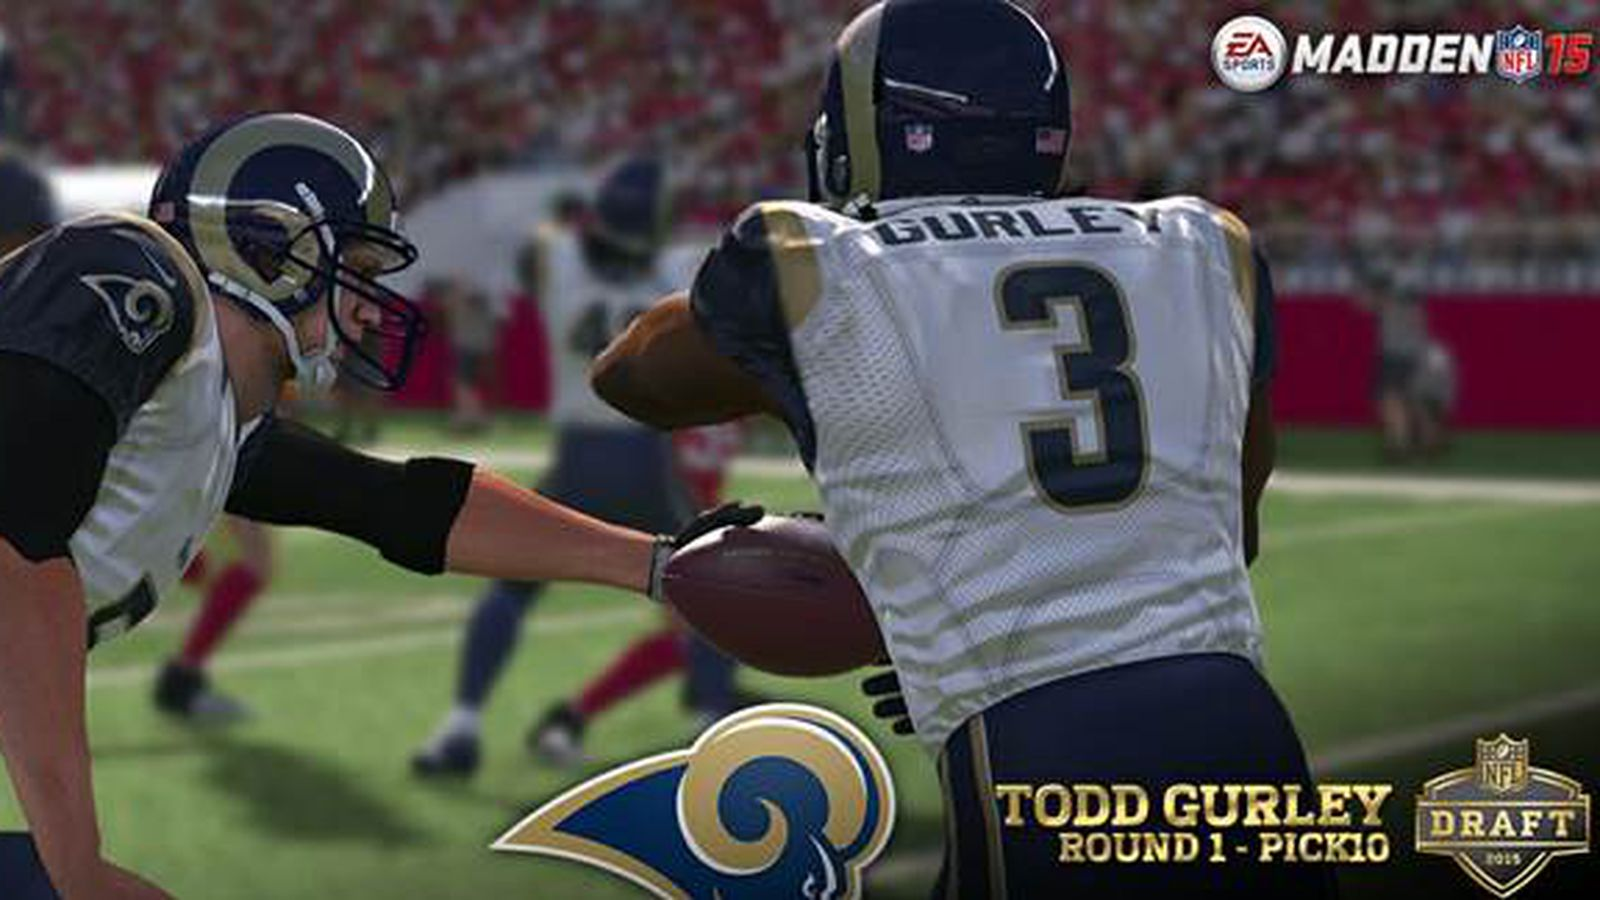 Todd Gurley Madden Card Turf Show Times